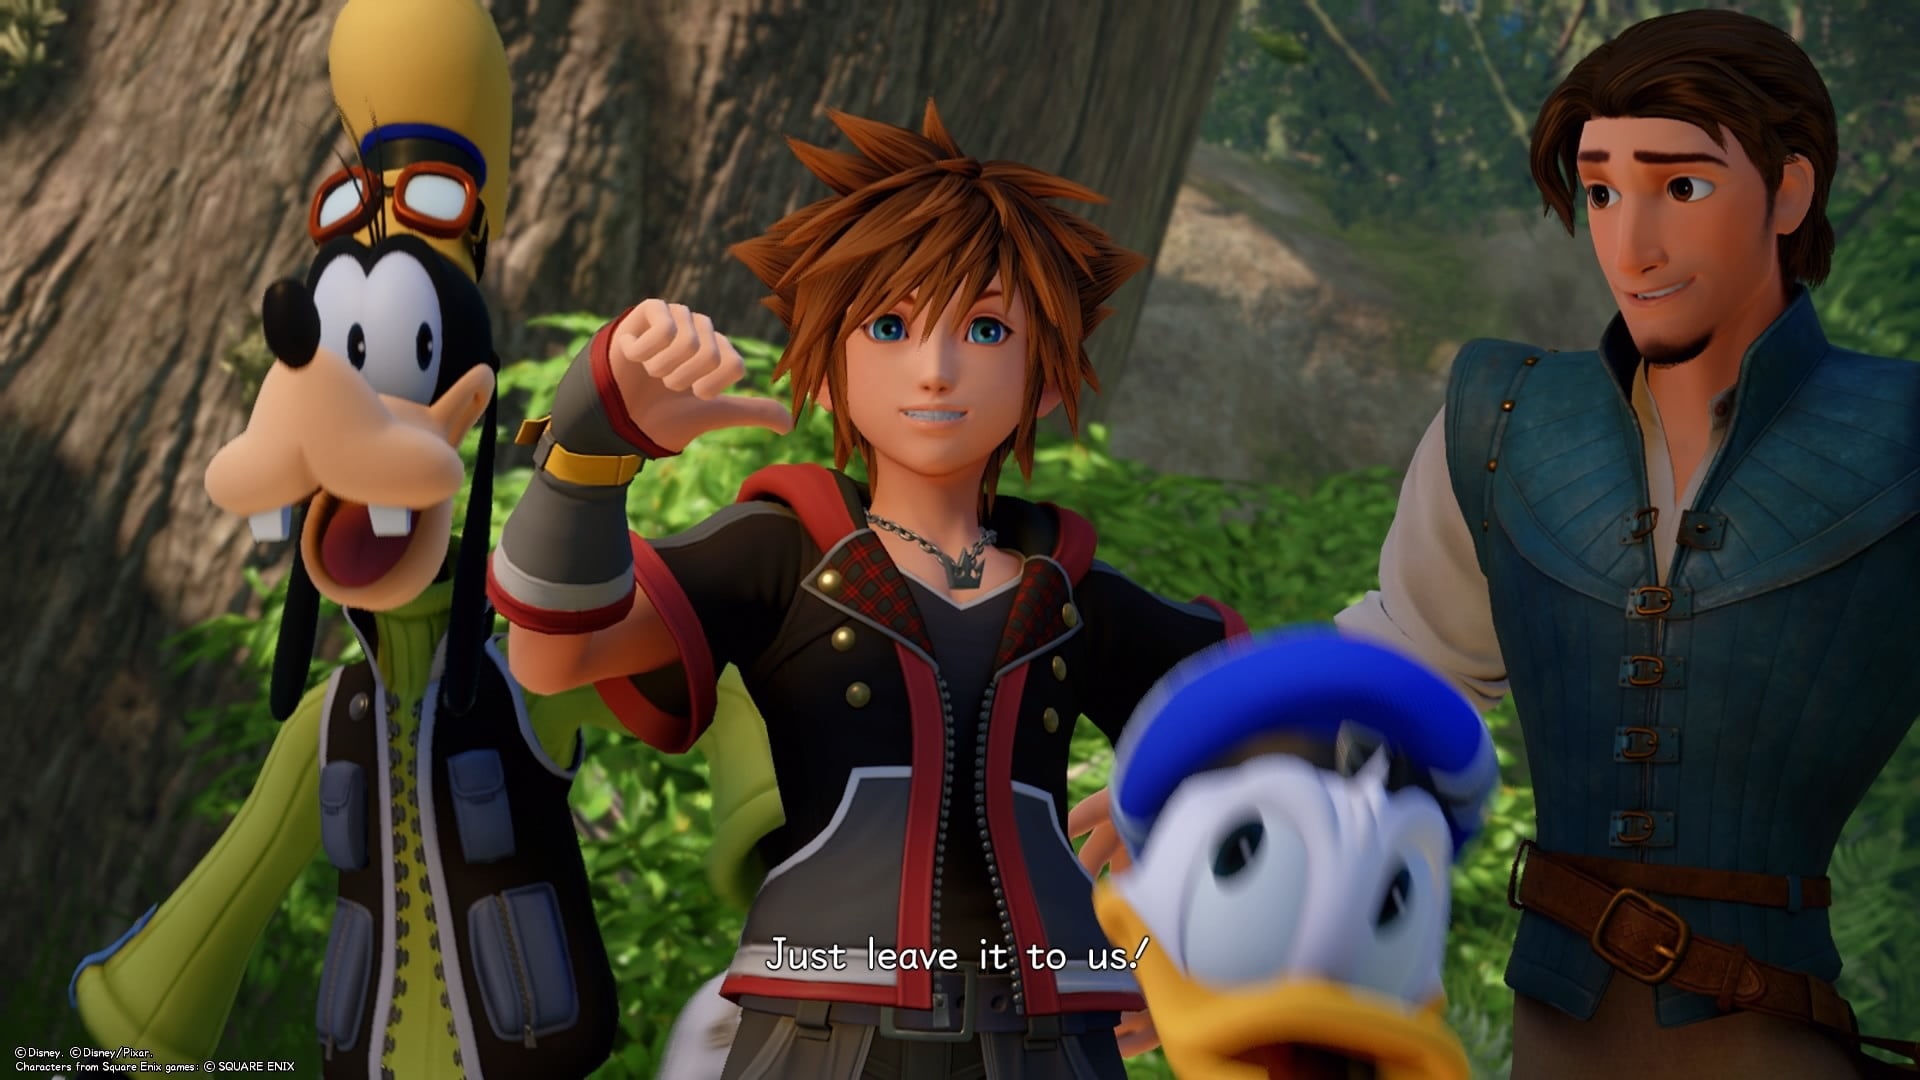 Kingdom Hearts Iii Review A Charming Finale To Disney And Square